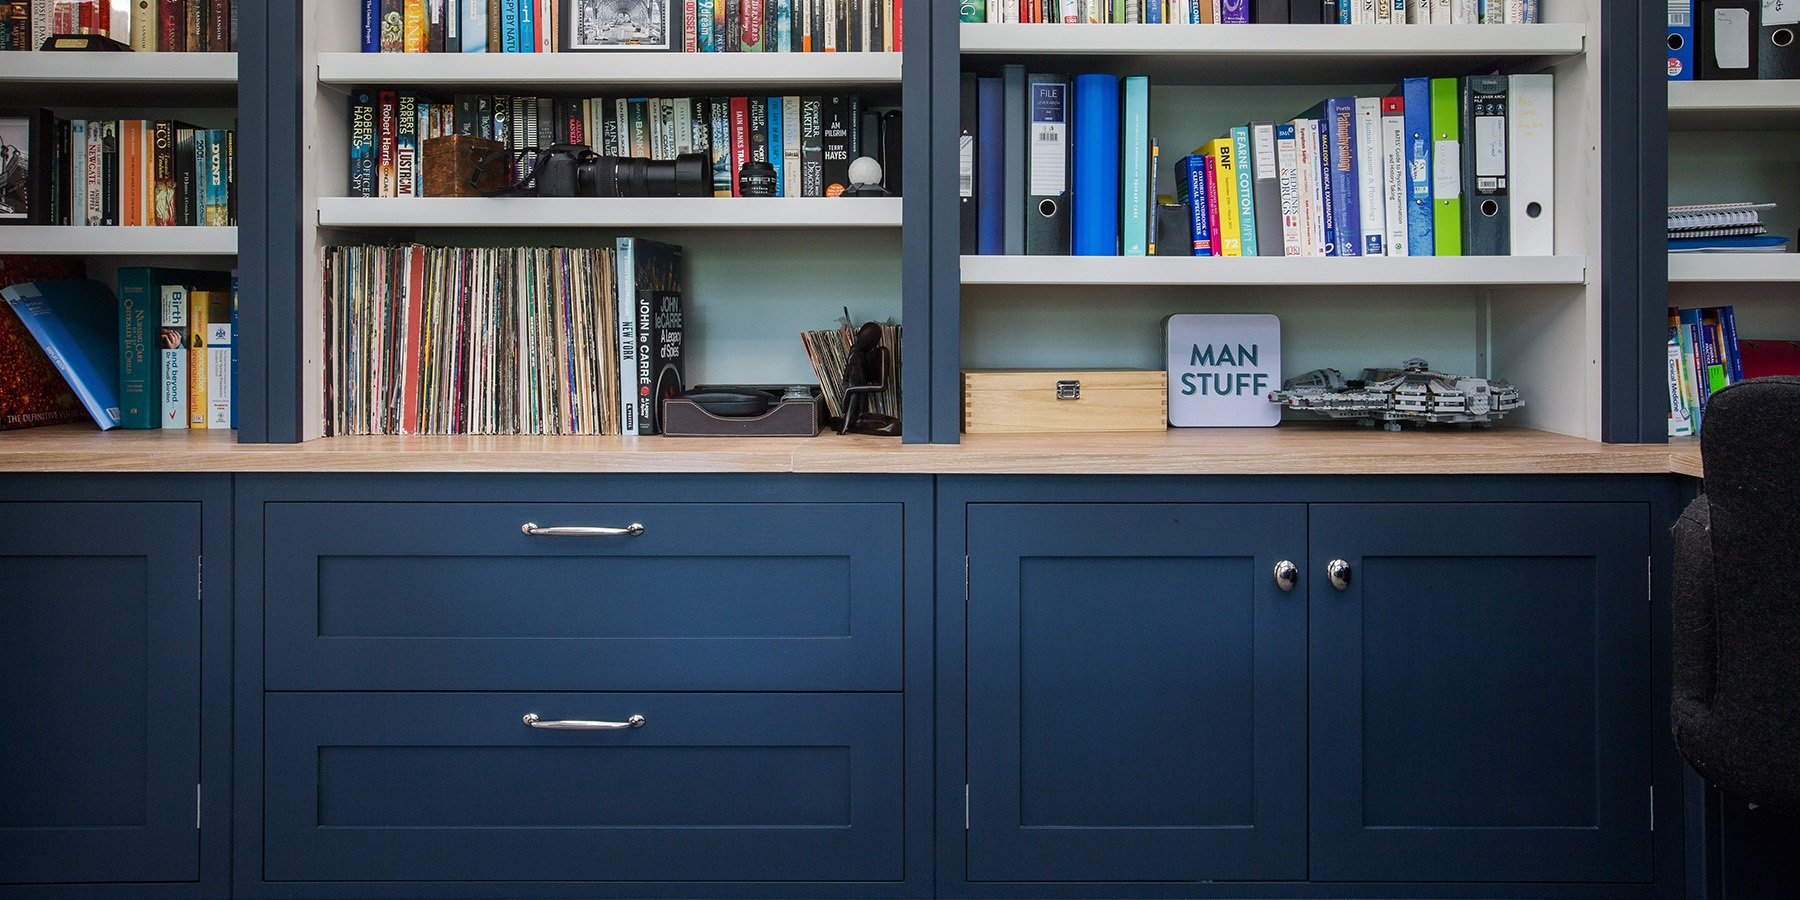 Bespoke Home Office Book Shelves - Handmade, bespoke bookshelves with adjustable shelf heights and storage solutions.